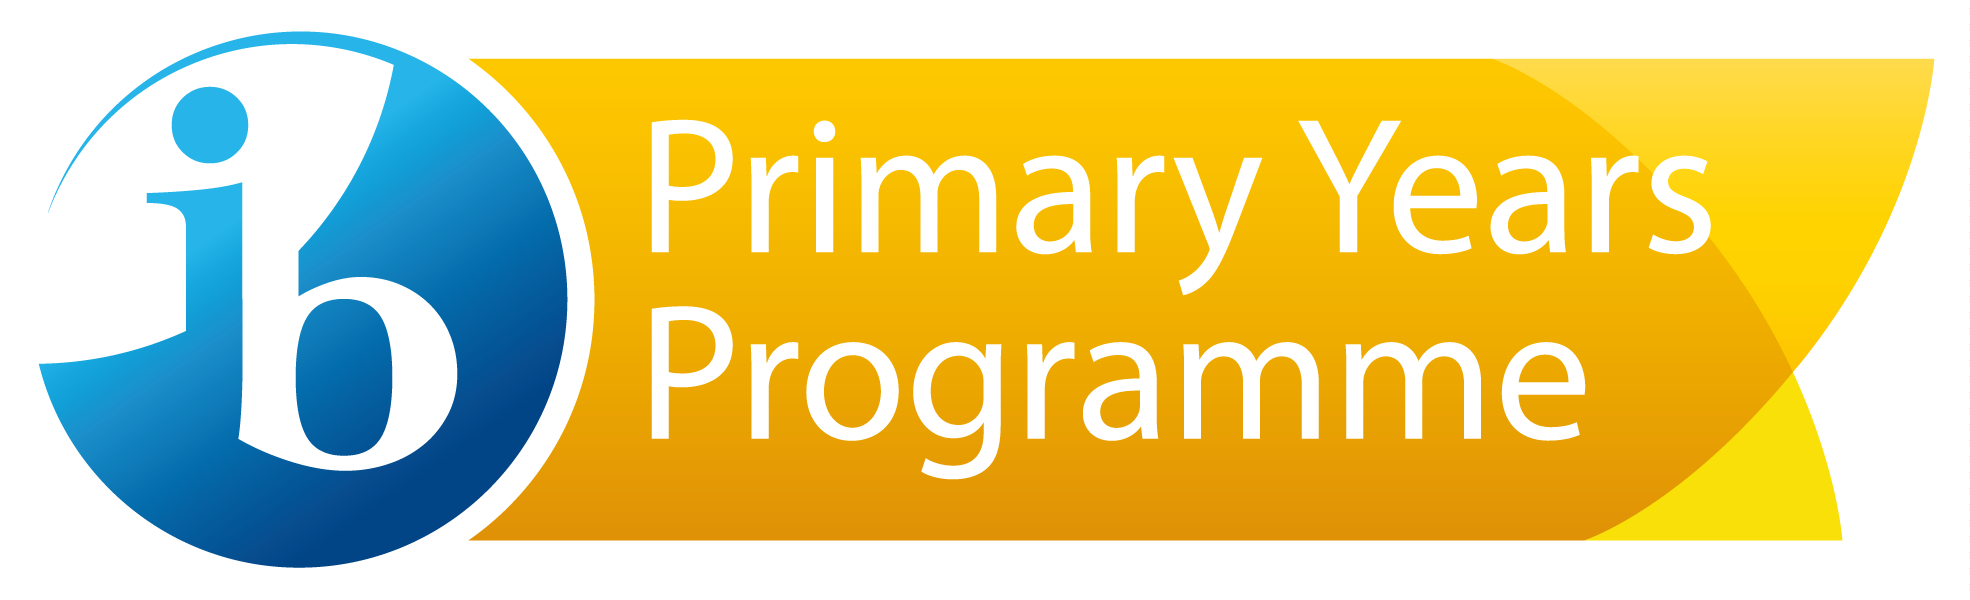 International Baccalaureate Primary Years Programme (PYP)